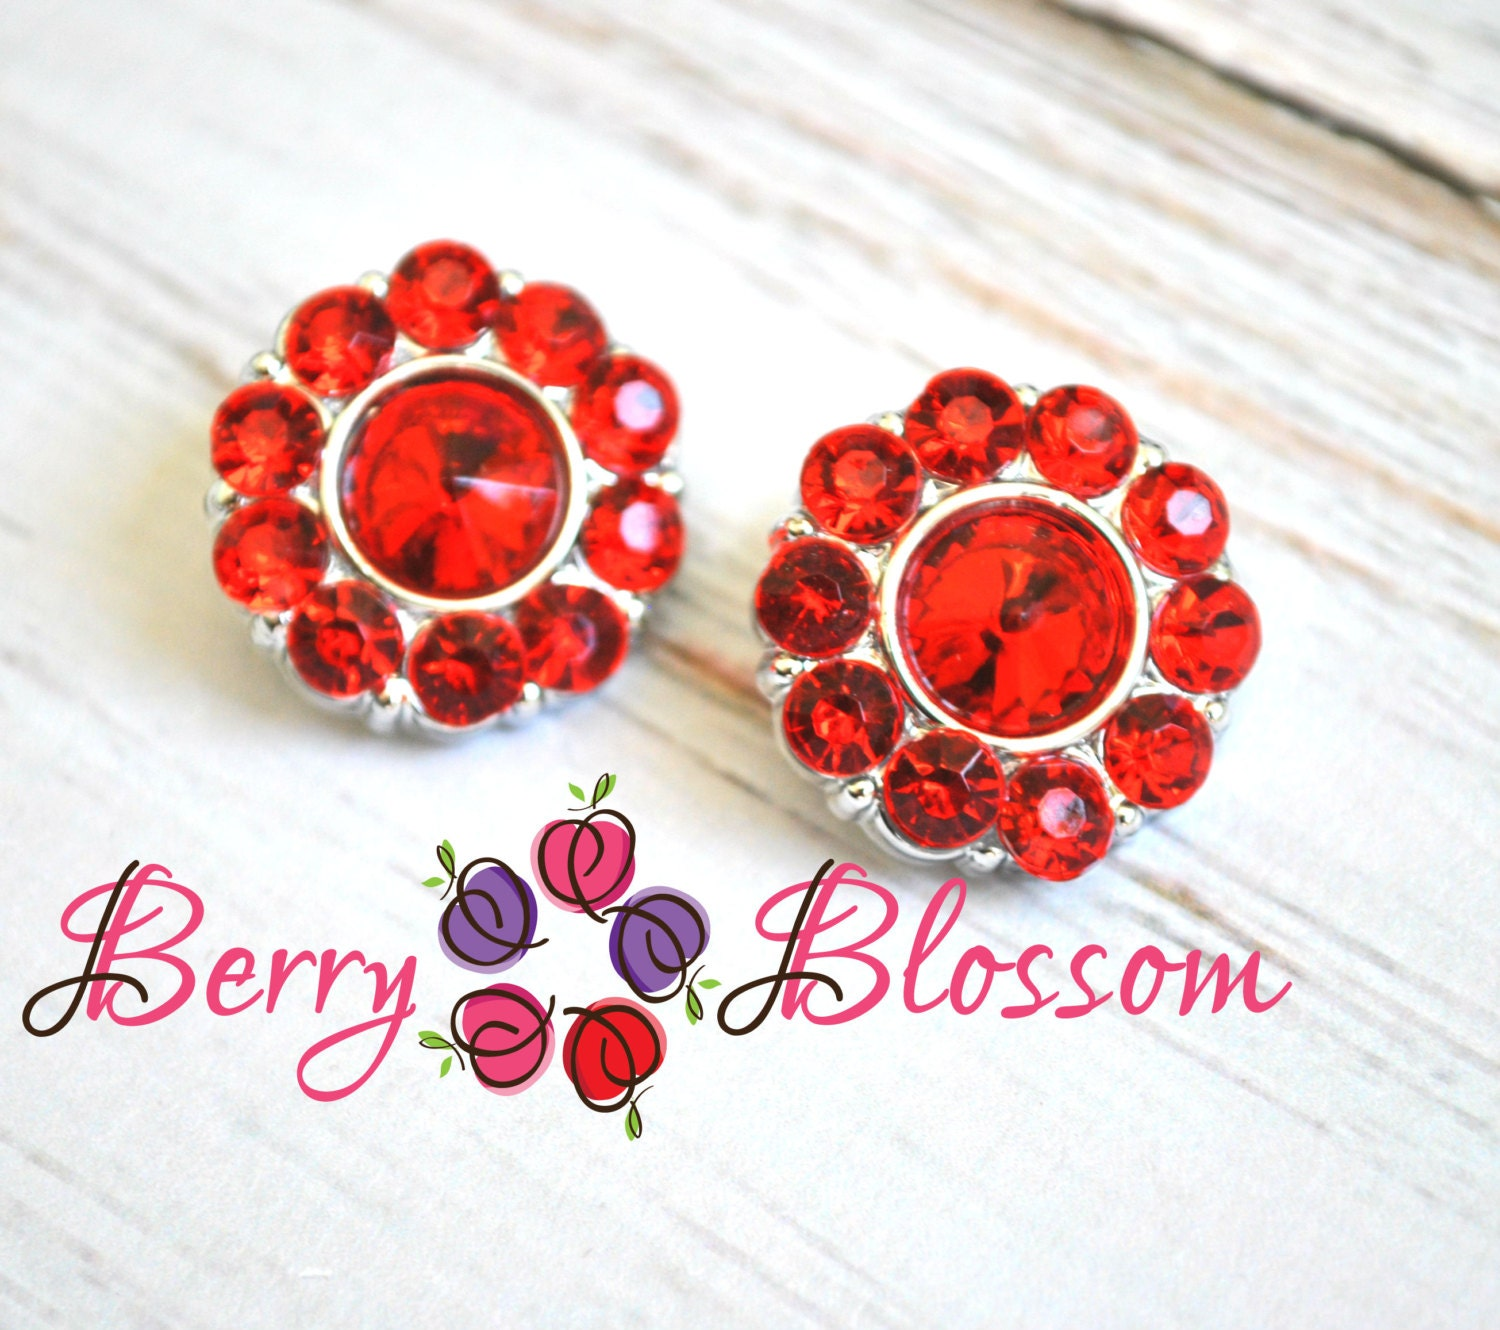 Hair bow button accessories - 21mm Red Rhinestone Button Set Of 2 Acrylic Buttons Flower Centers Hairbow Supplies Gem Accessories